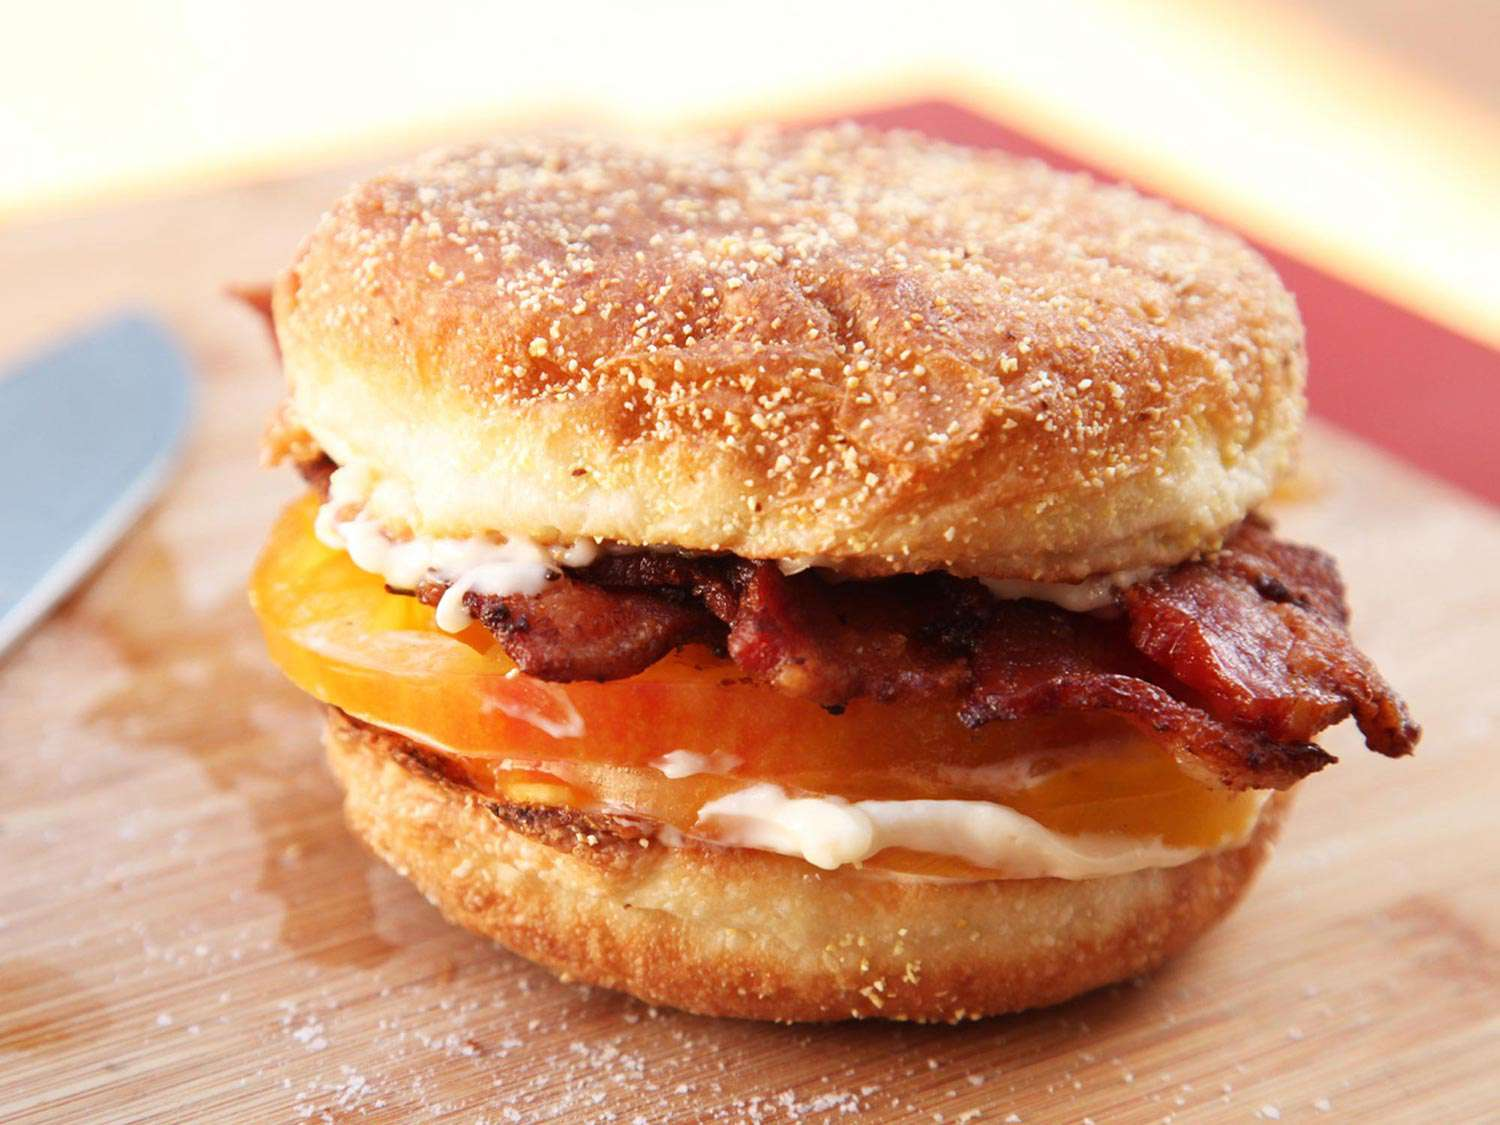 Finished bacon, mayo, and tomato sandwich on a toasted English muffin